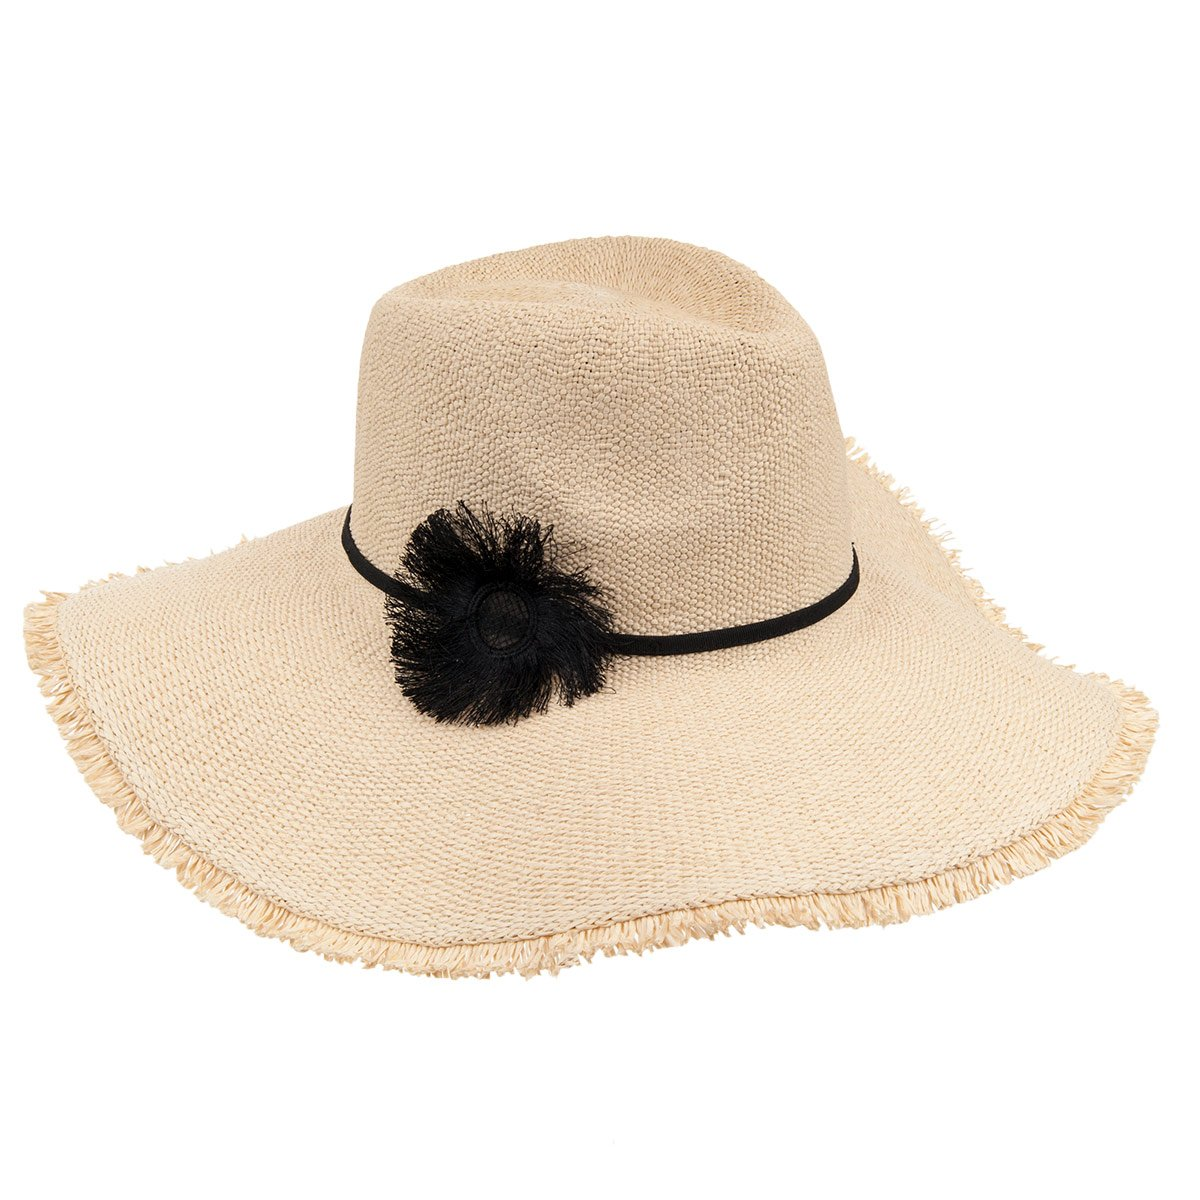 Seeberger Fedora Wide Brim Straw